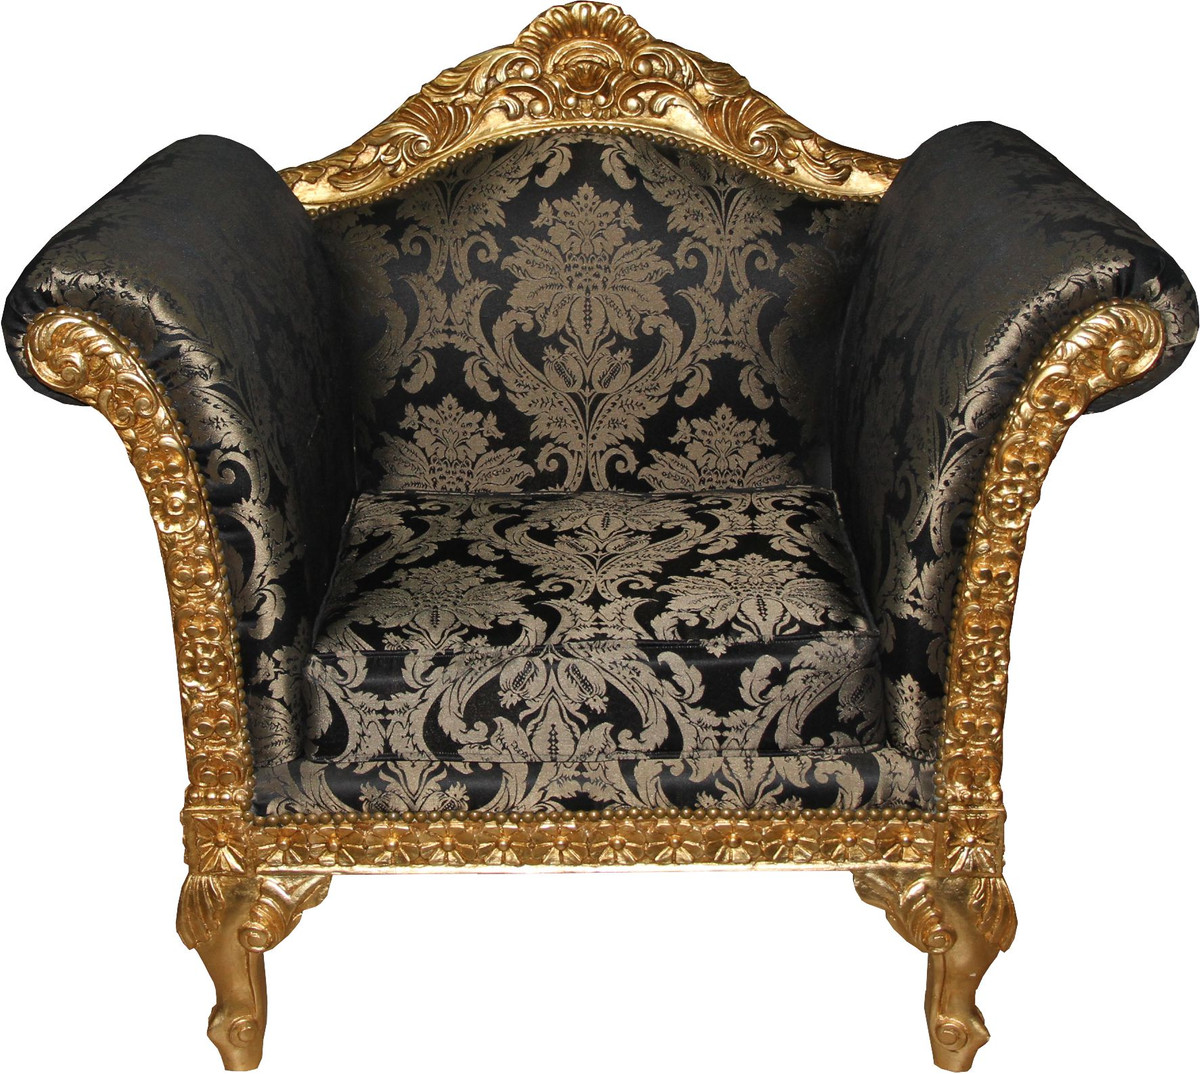 barock sessel modell al capone. Black Bedroom Furniture Sets. Home Design Ideas